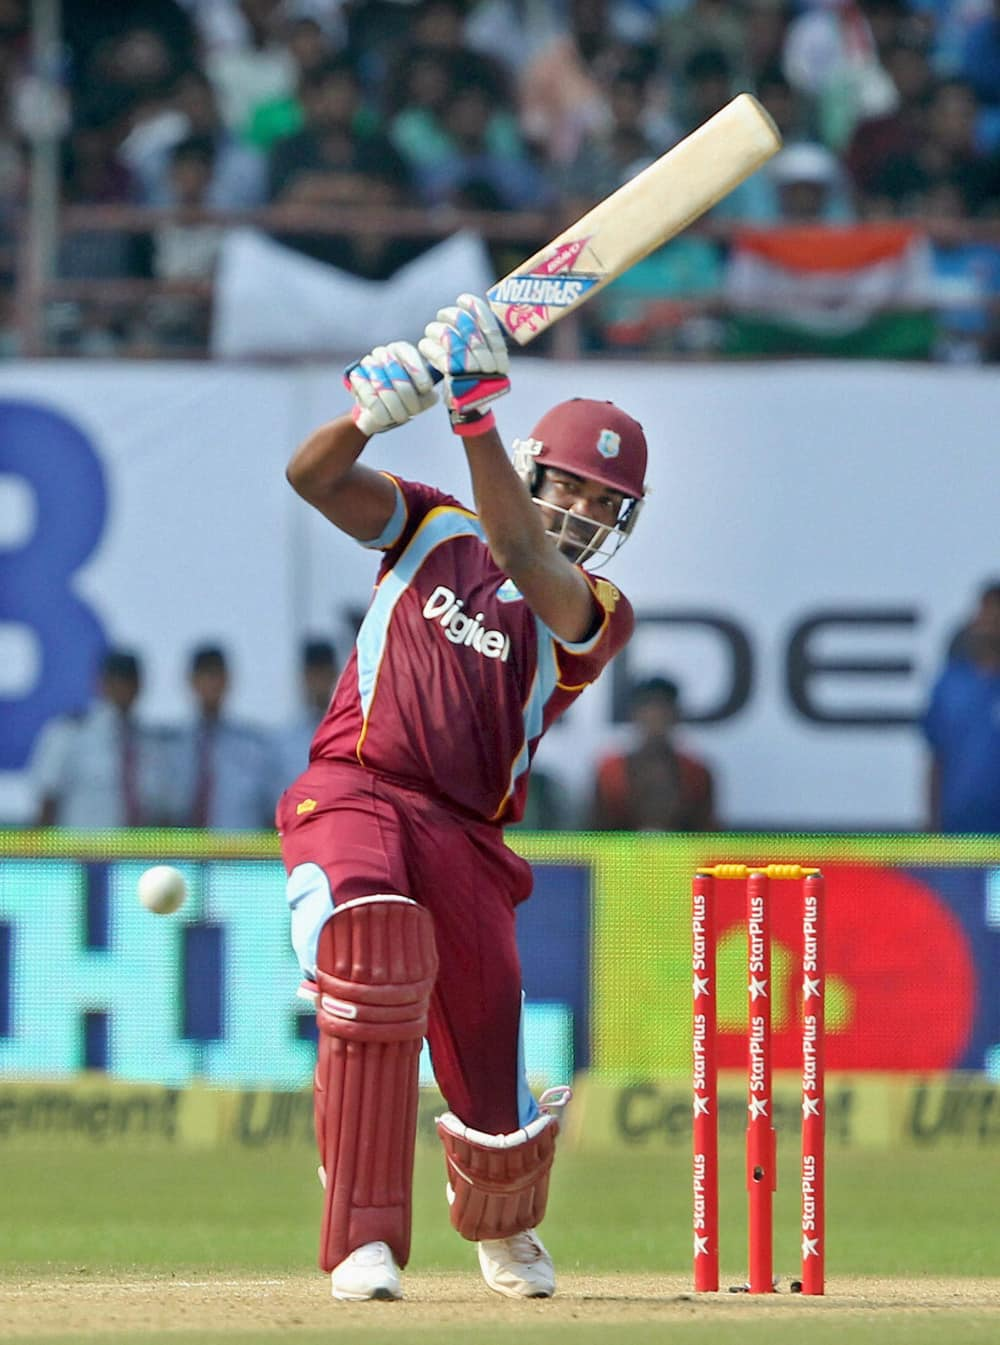 West Indies player Darren Bravo plays a shot during the 1st ODI match against India, in Kochi.